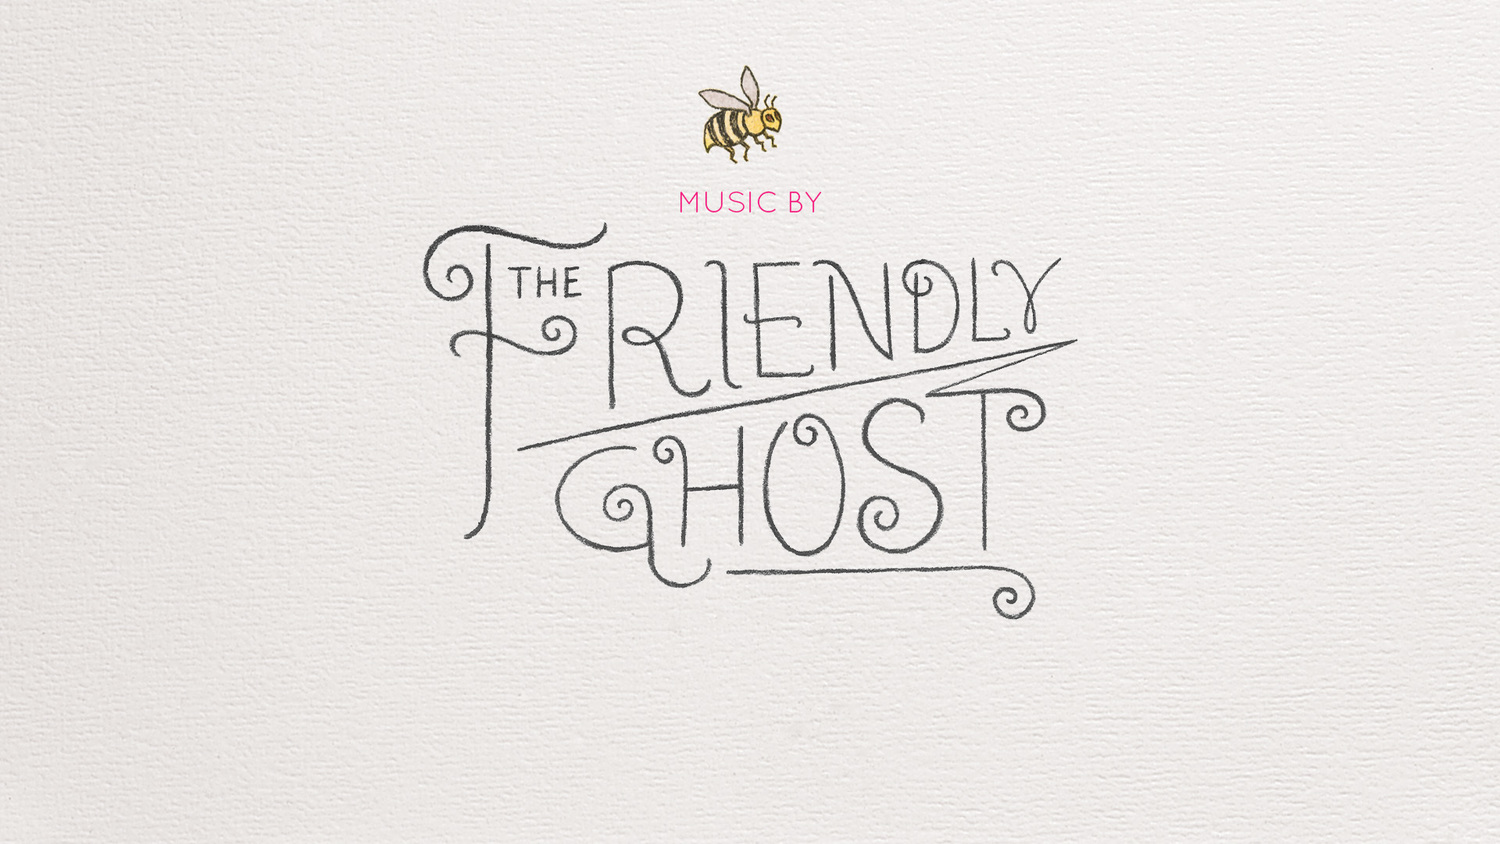 Forgiven_titles_0026_27+Friendly+Ghost.jpg